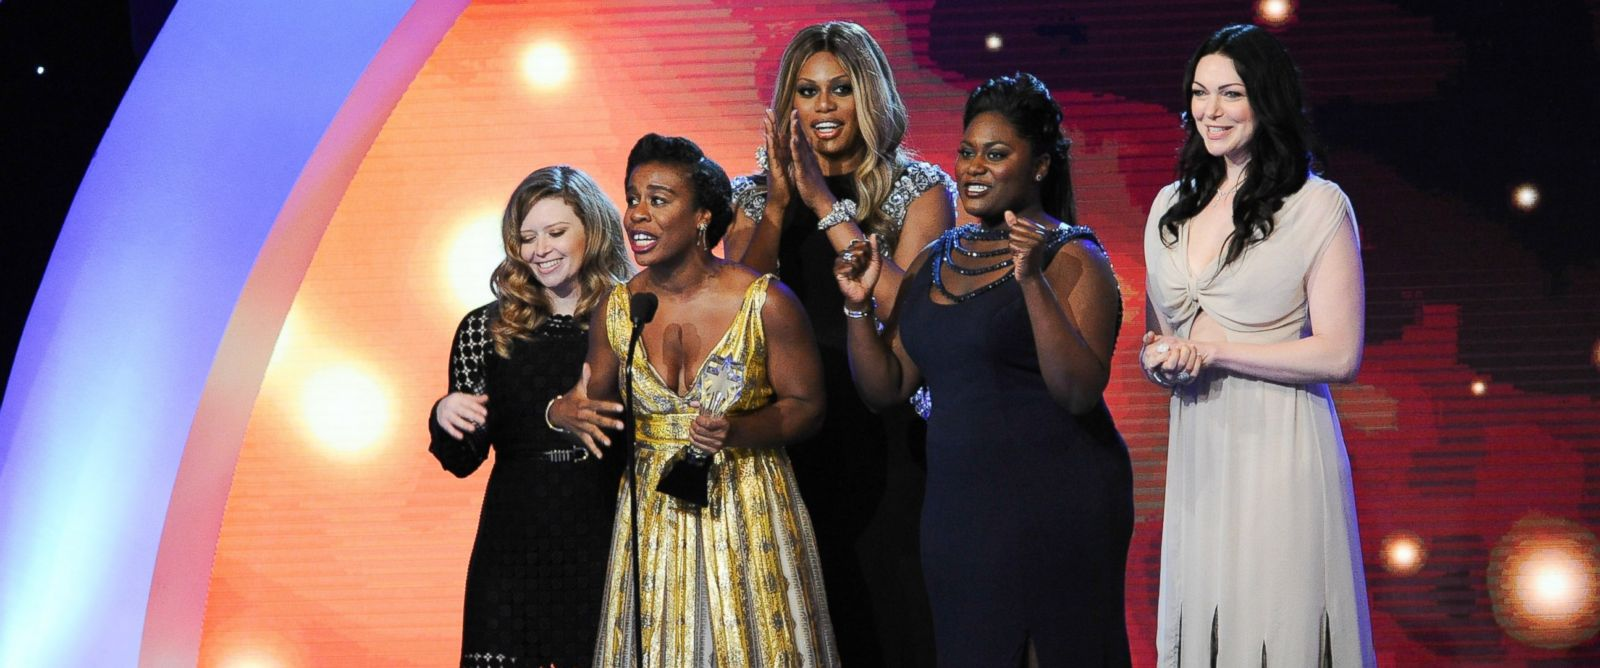 PHOTO: Actresses Natasha Lyonne, Uzo Aduba, Laverne Cox, Danielle Brooks, and Laura Prepon accept the Best Comedy Series award for Orange is the New Black onstage during the 4th Annual Critics Choice Television Awards on June 19, 2014.